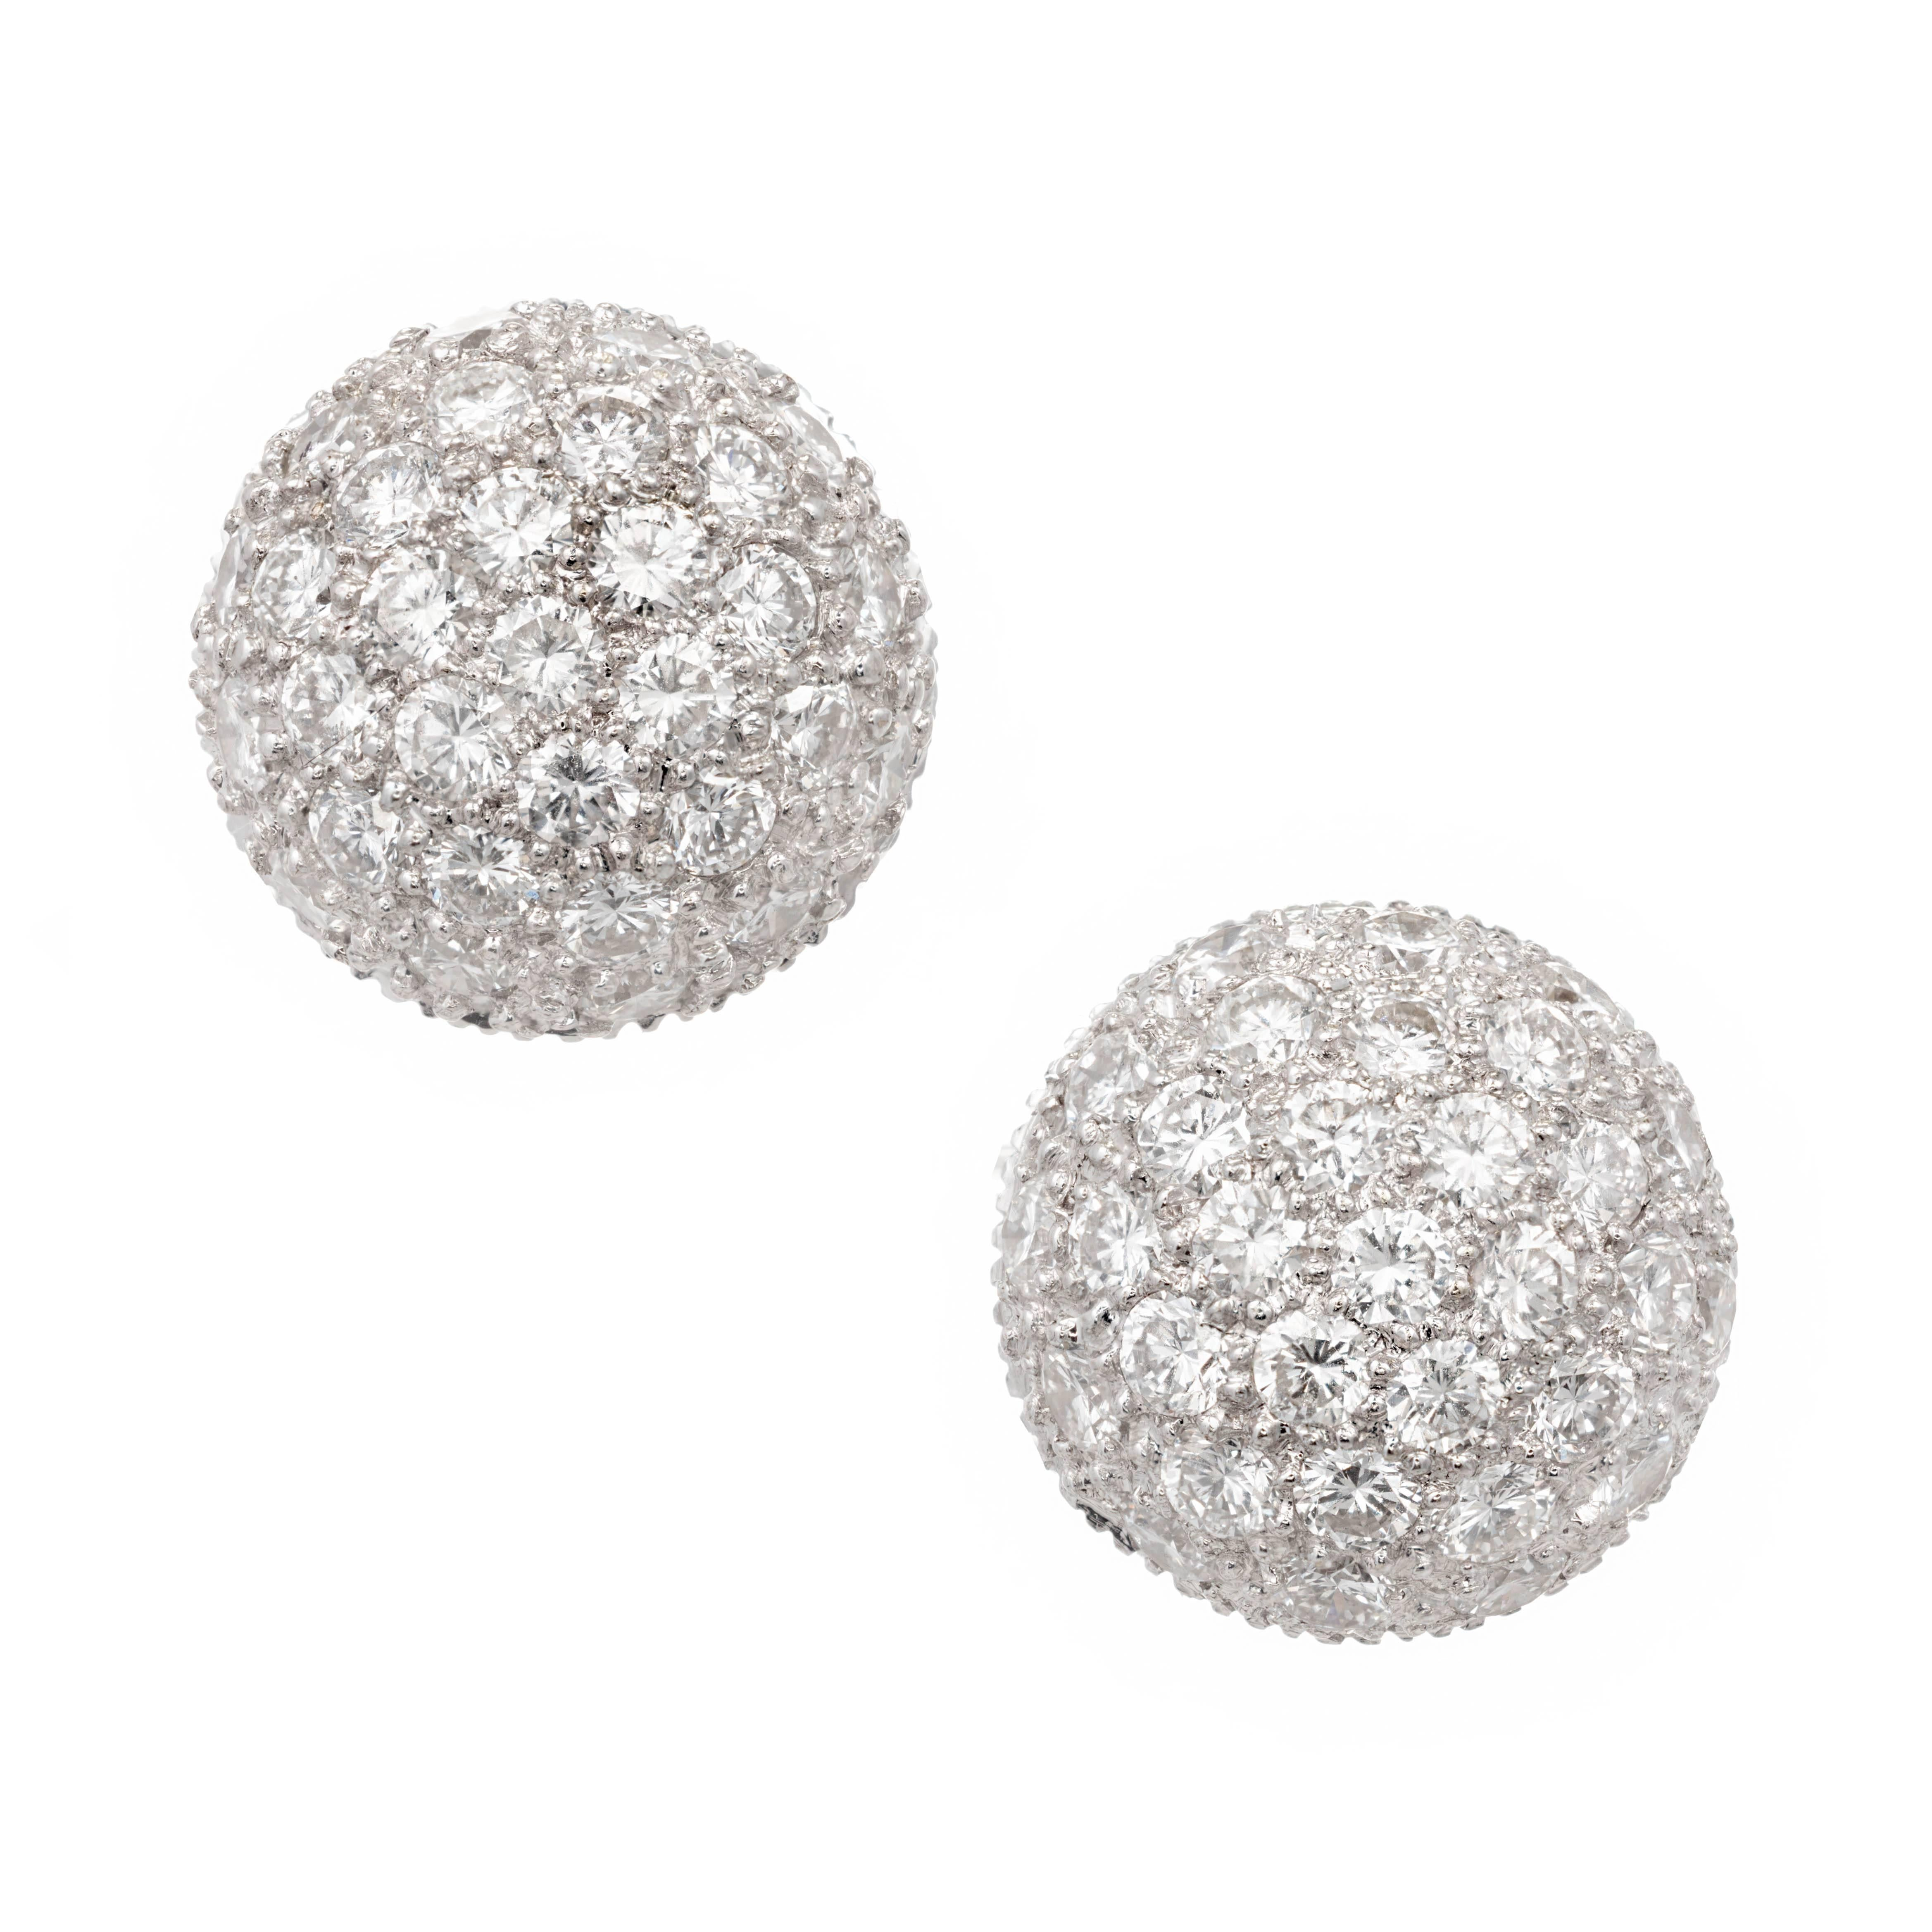 1.50 Carat Diamond High Dome Cluster White Gold Earrings